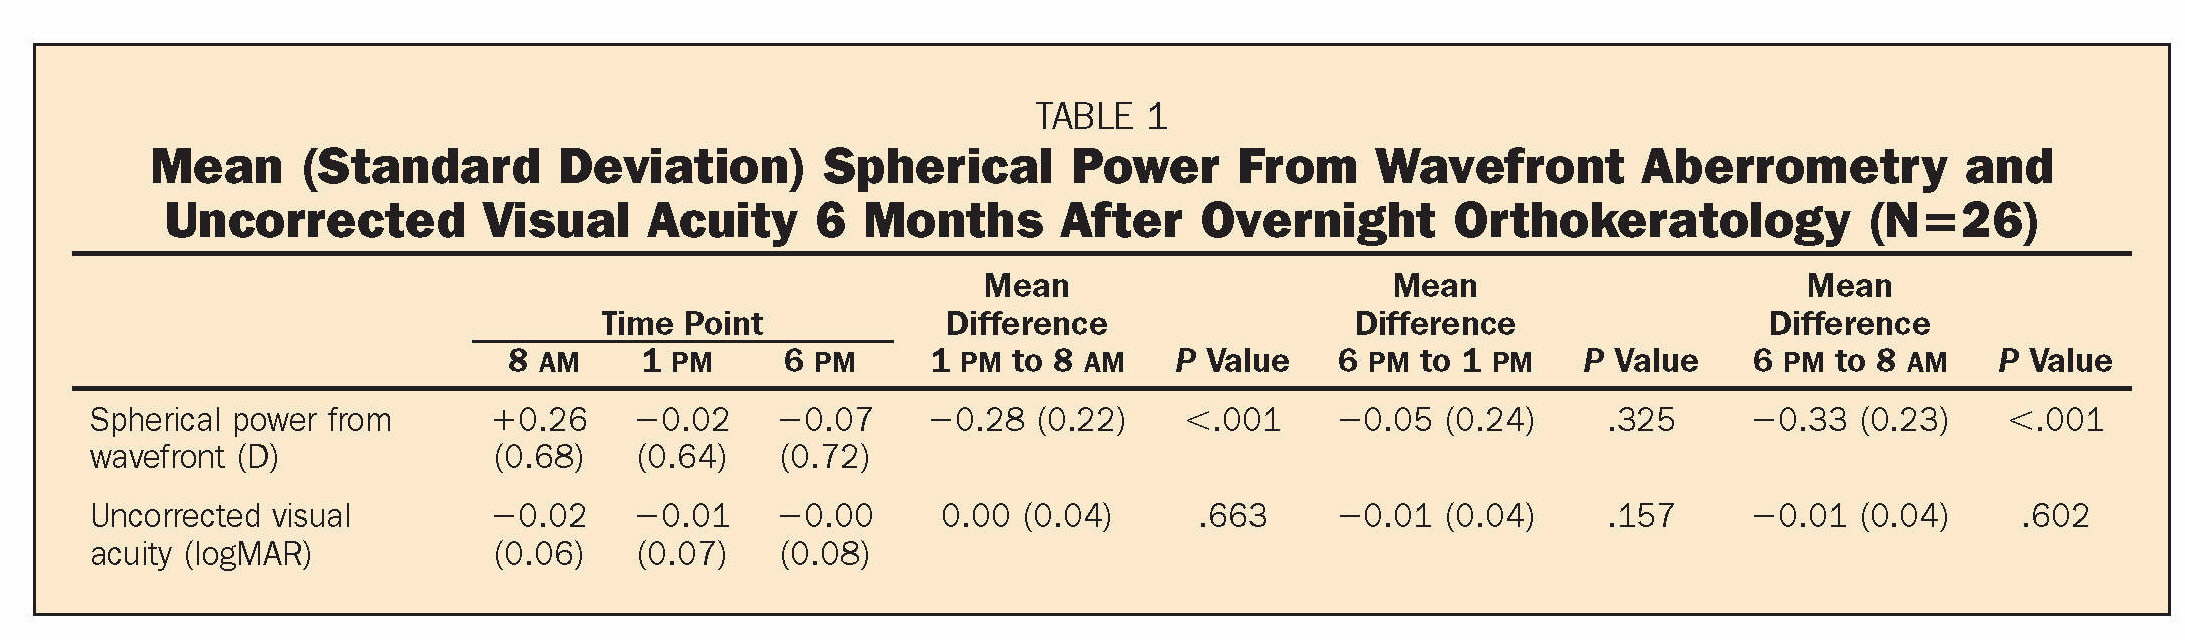 TABLE 1Mean (Standard Deviation) Spherical Power From Wavefront Aberrometry and Uncorrected Visual Acuity 6 Months After Overnight Orthokeratology (N =26)